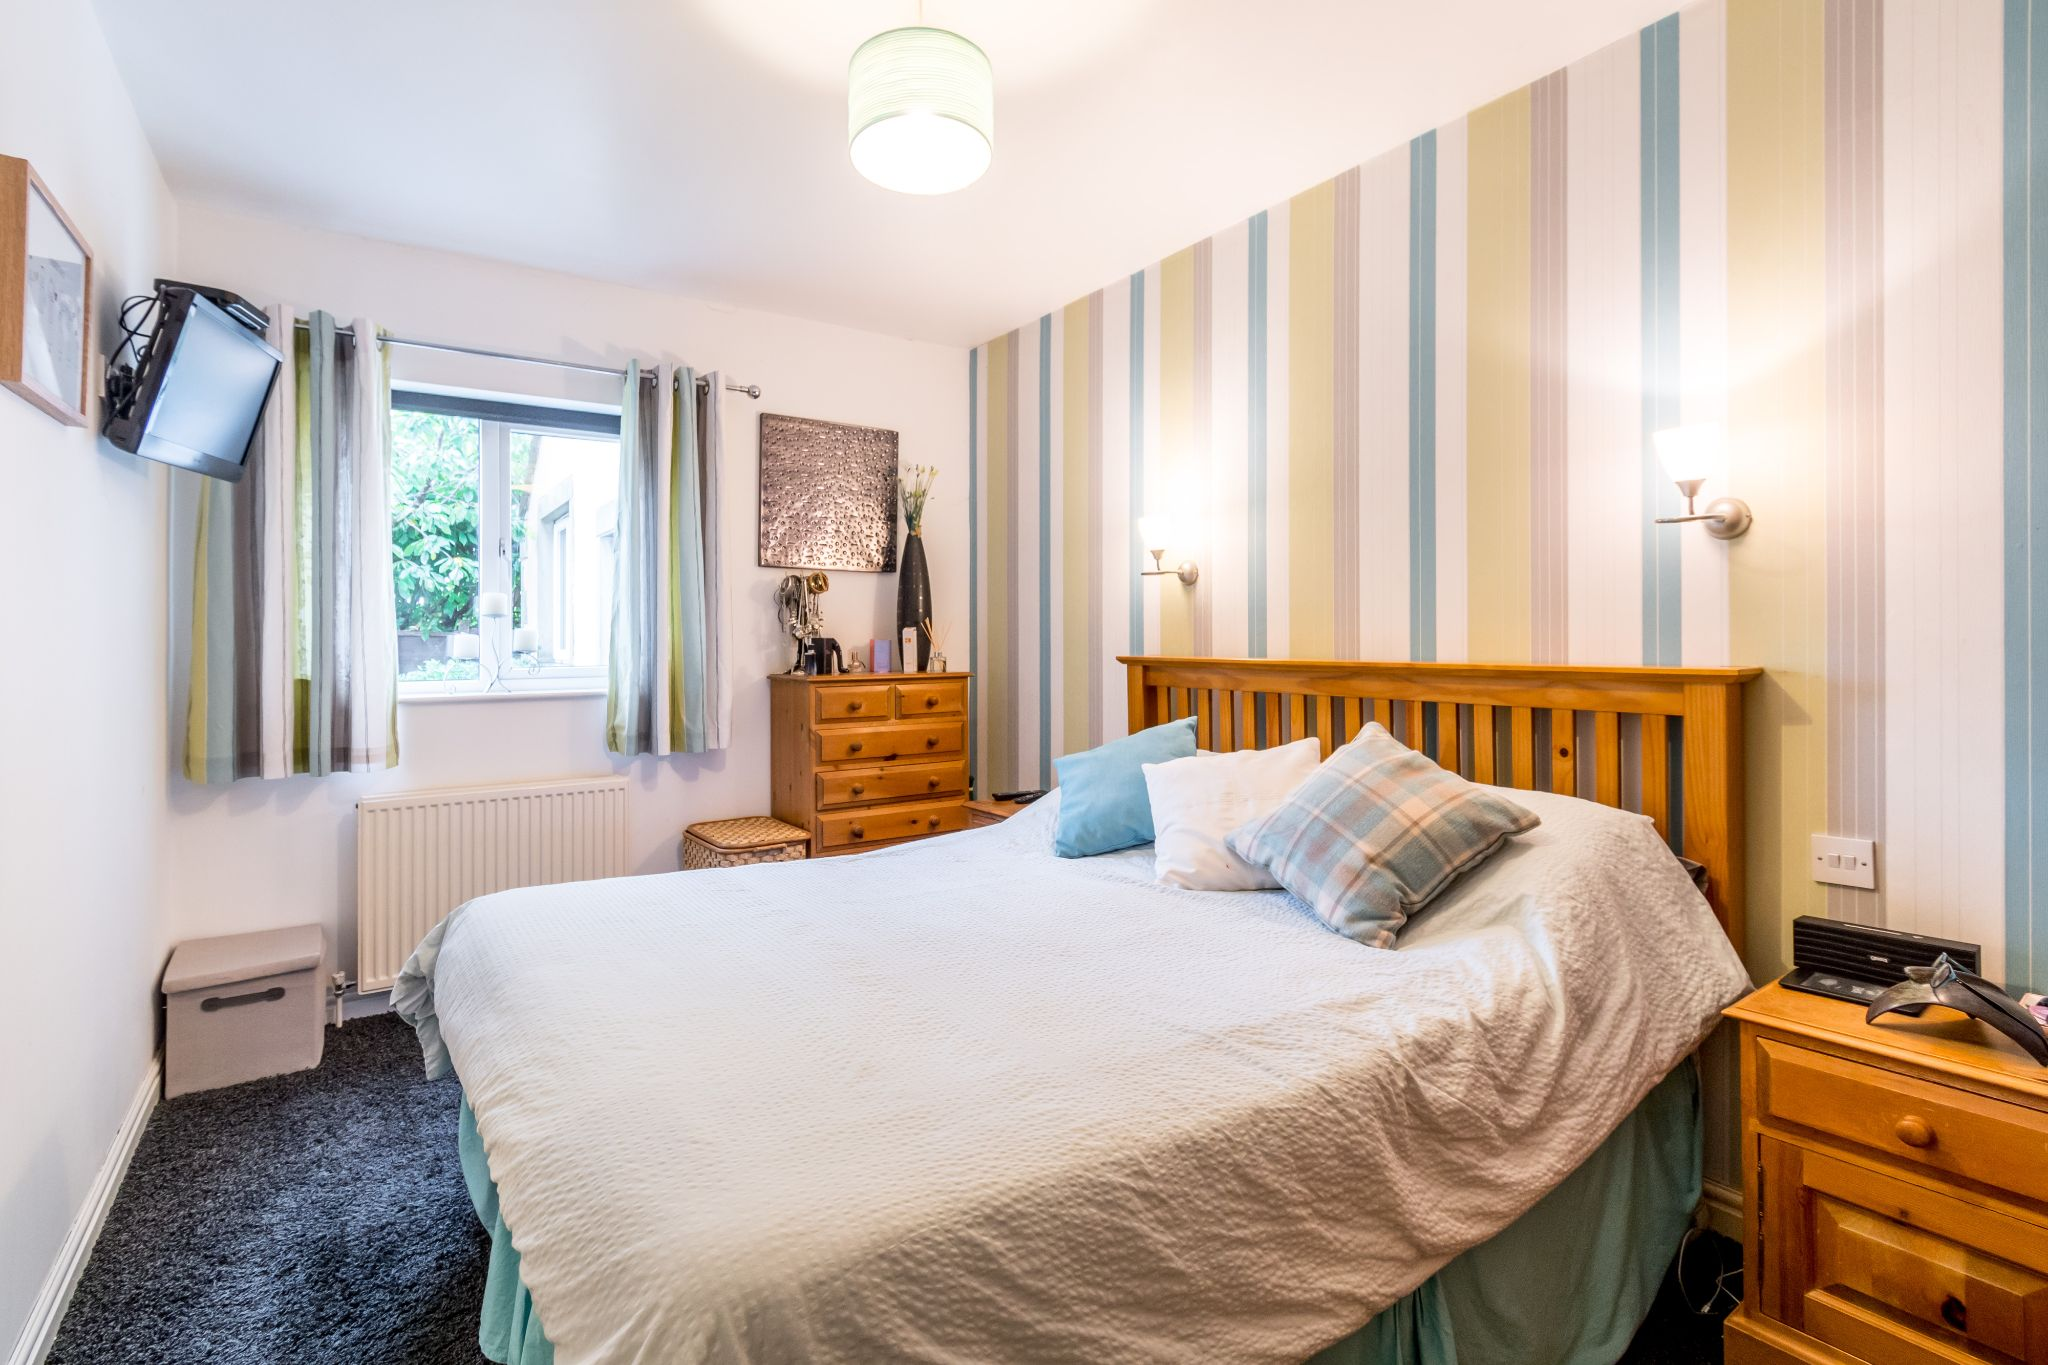 5 bedroom detached house For Sale in Brighouse - Master bedroom